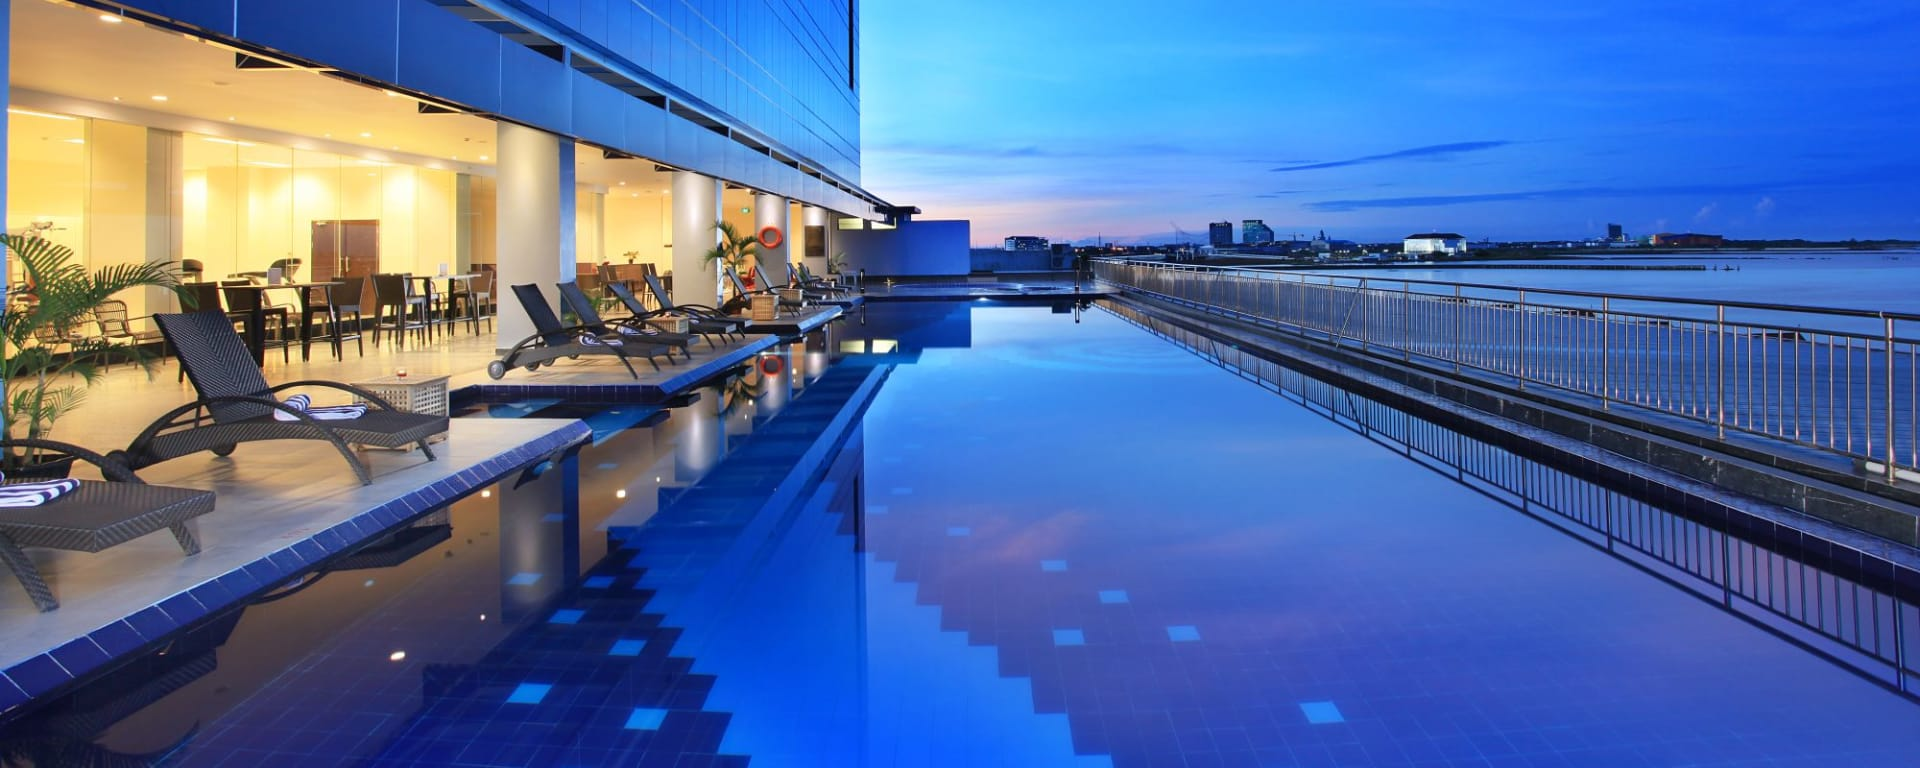 Swiss-Belhotel Makassar: SWIMMING POOL 02